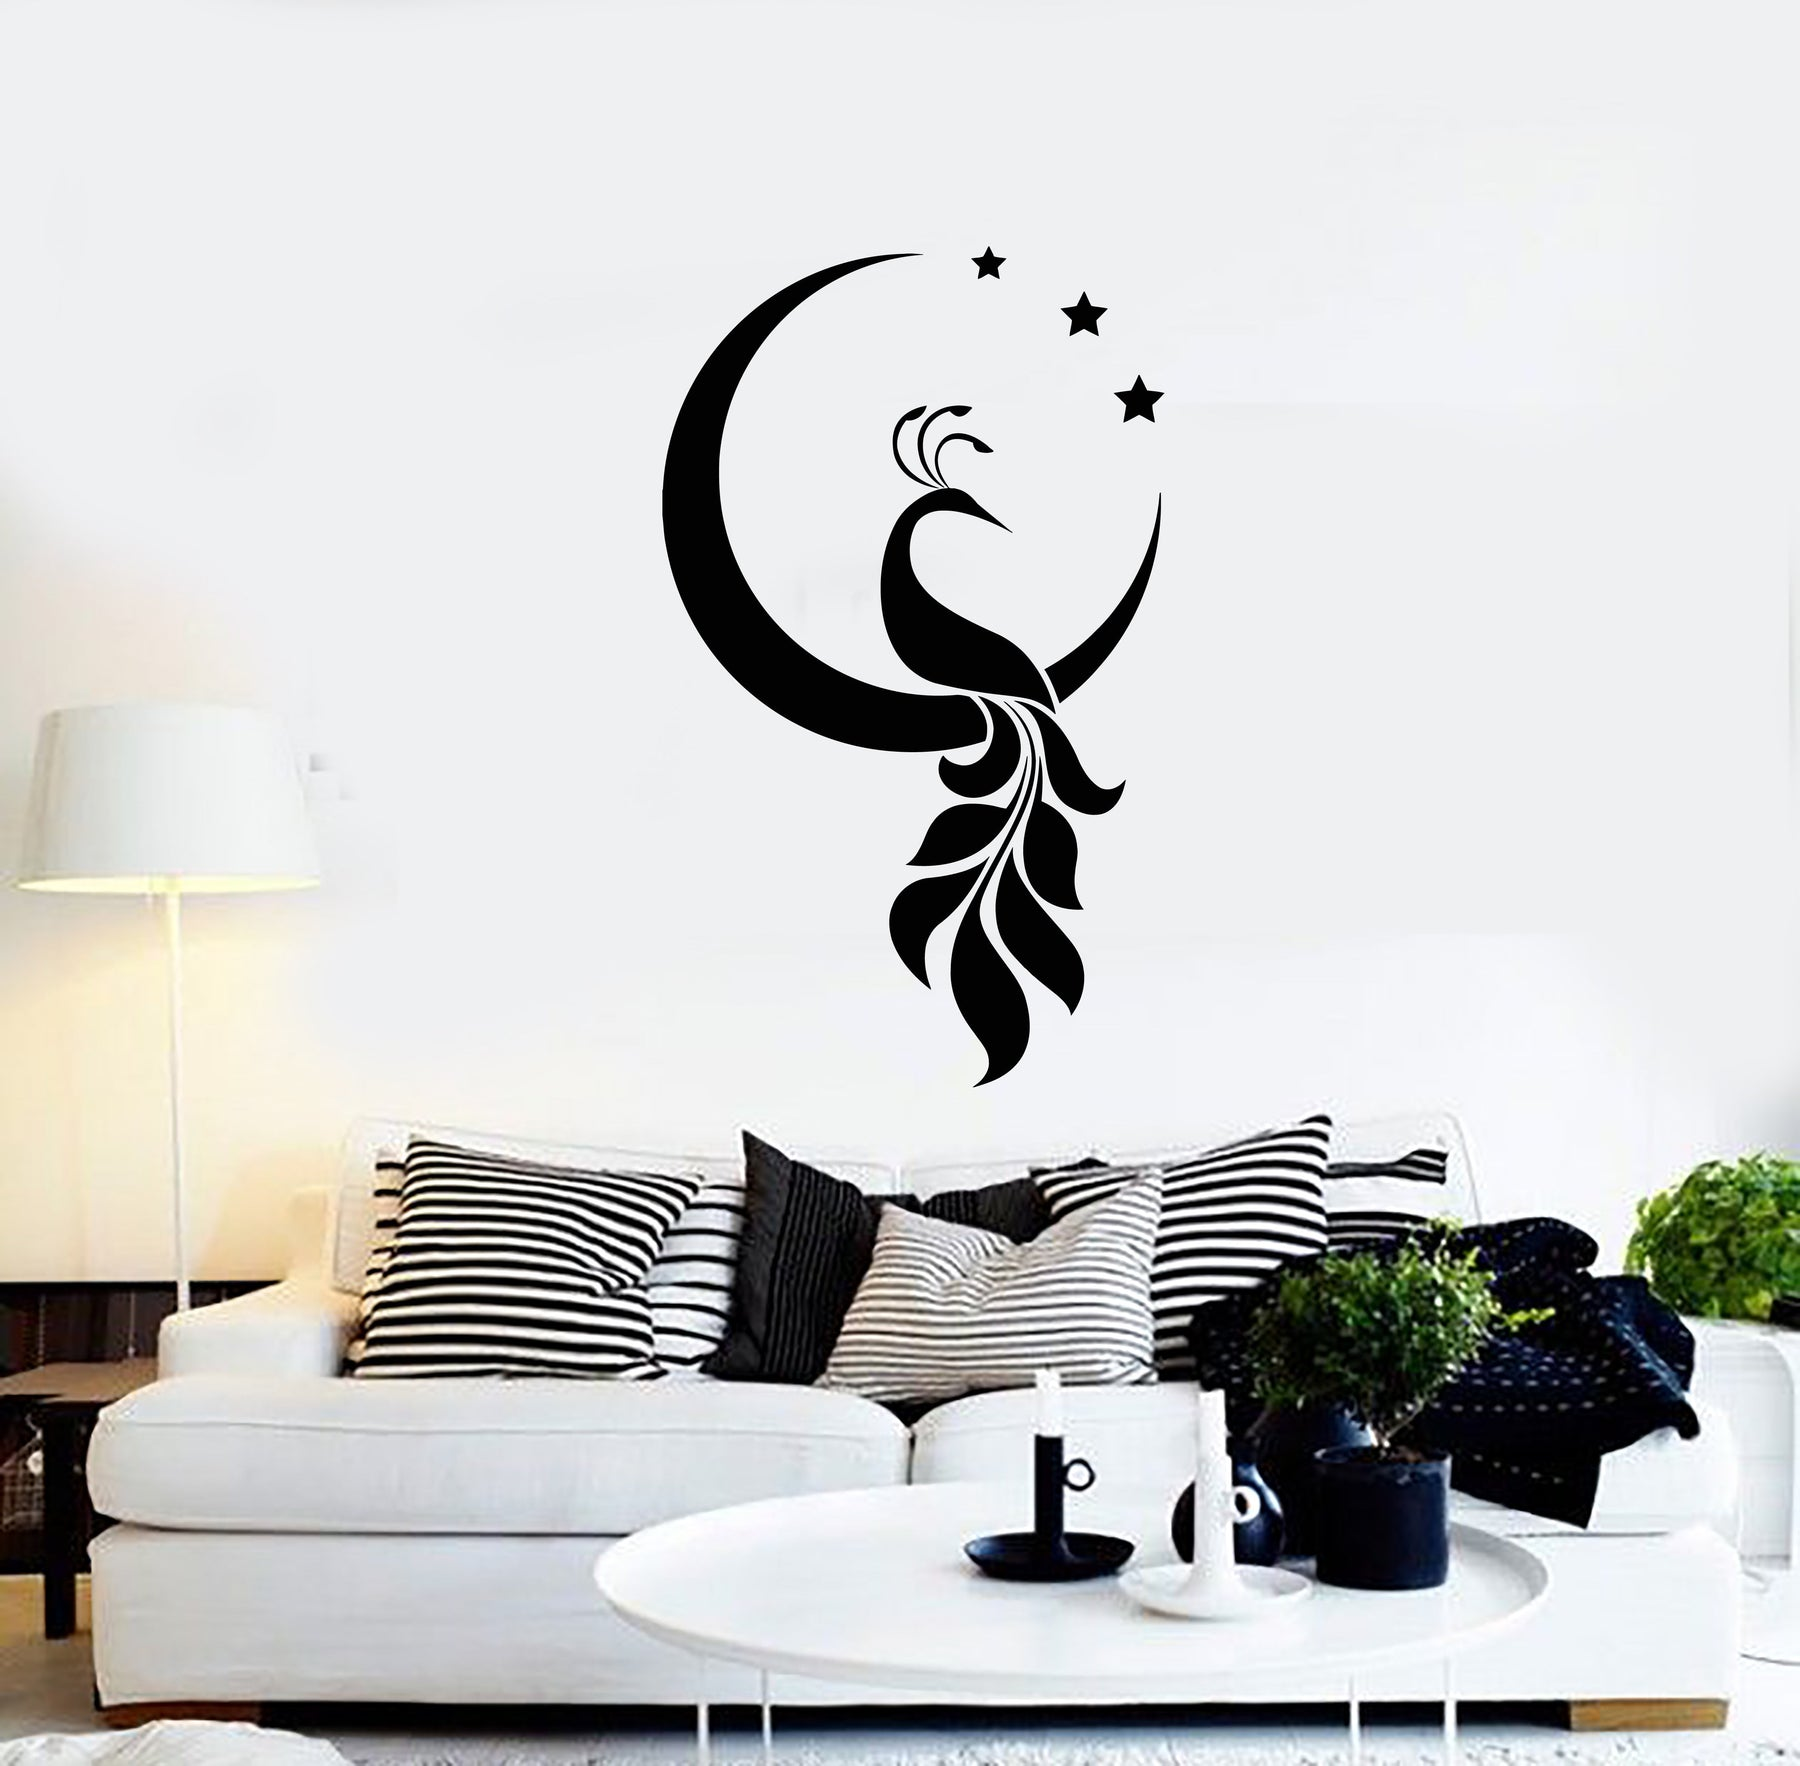 Vinyl Wall Decal Peacock Bird Crescent Stars Decor Room Home